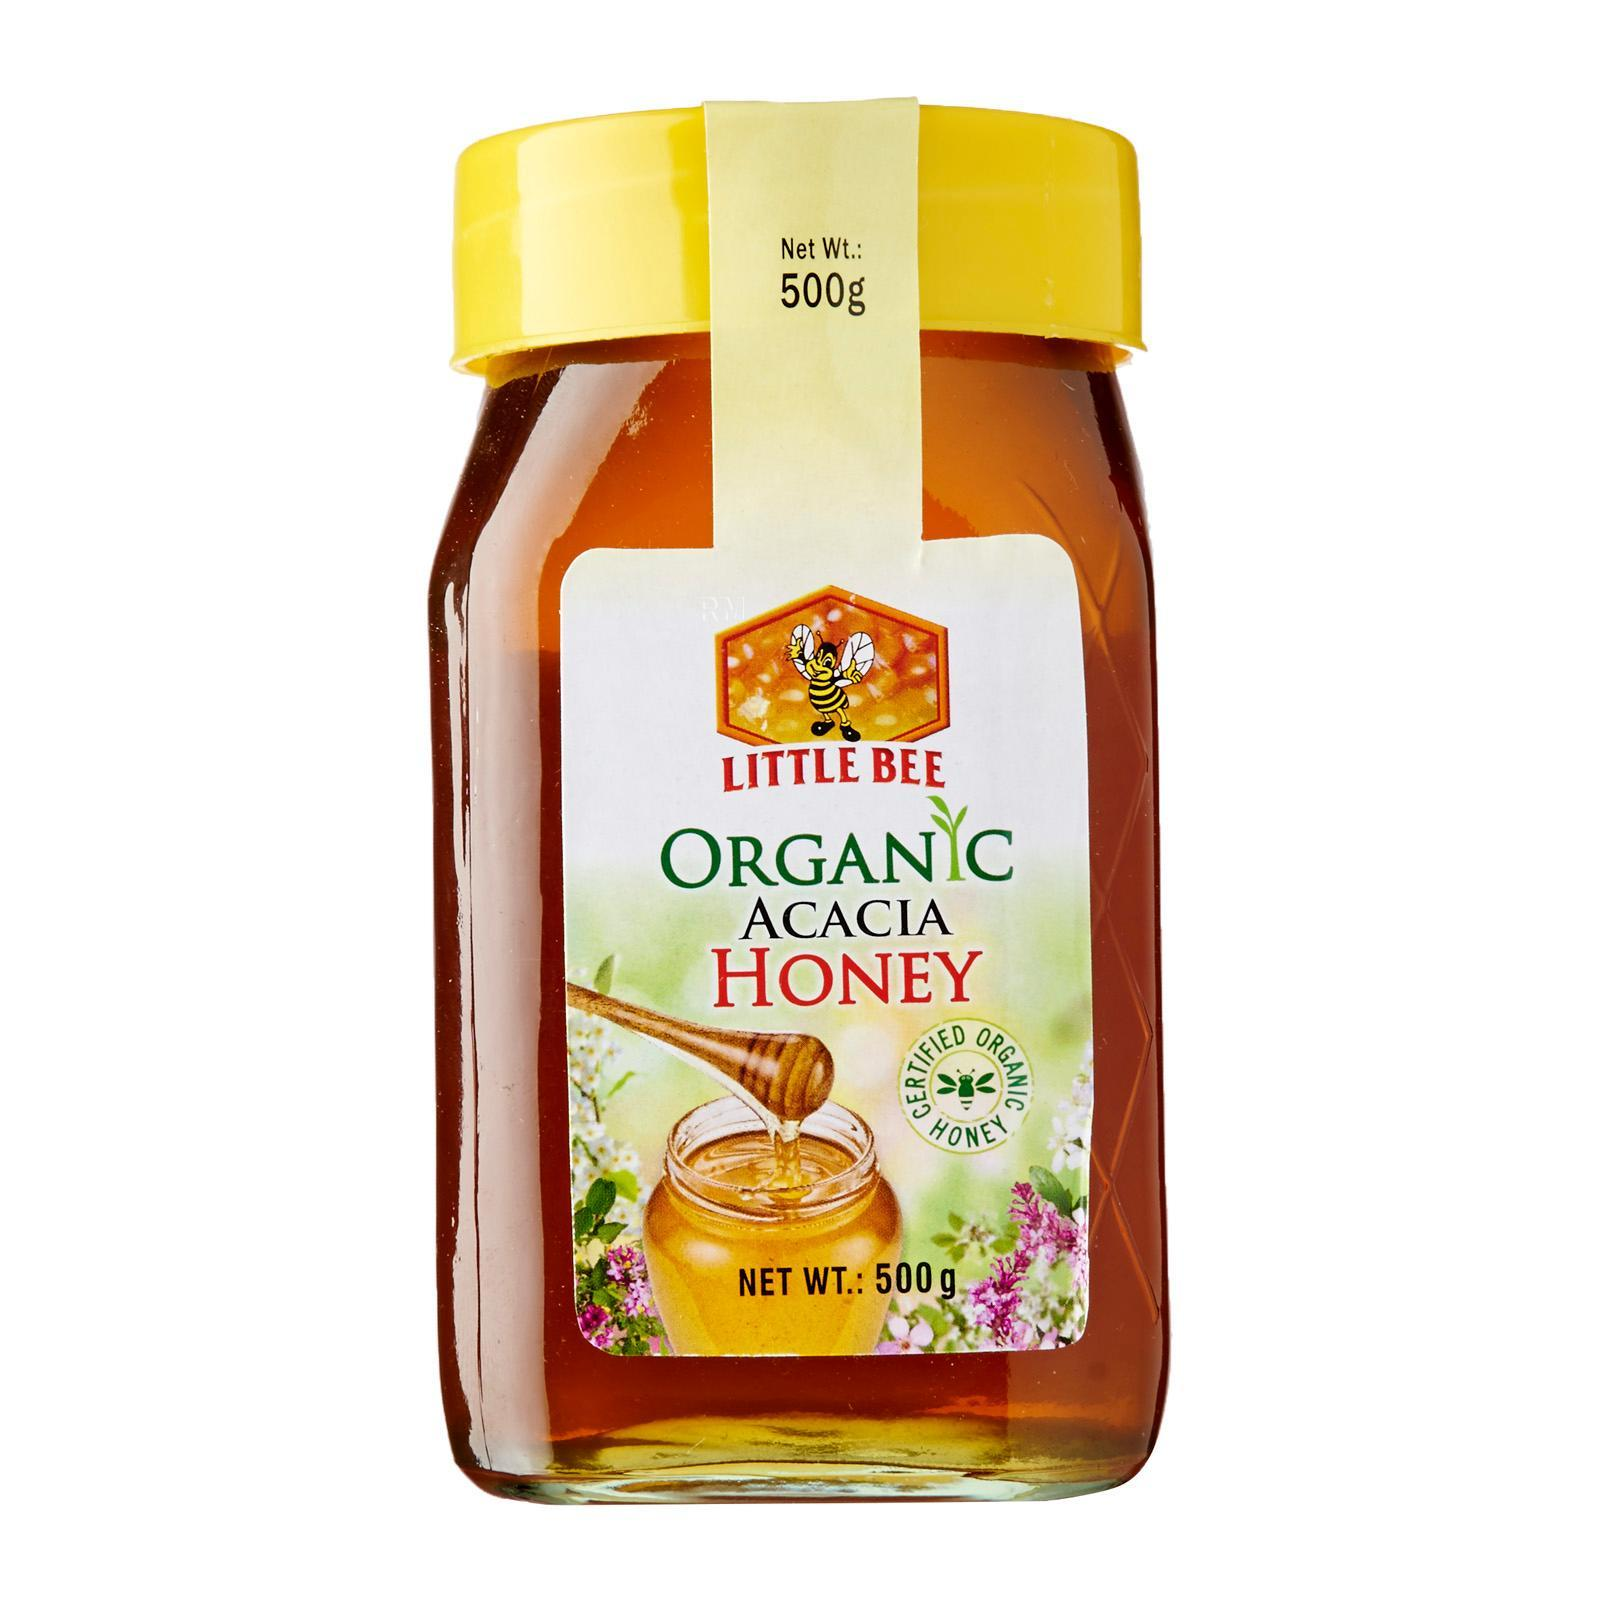 Little Bee Certified Organic Acacia Honey